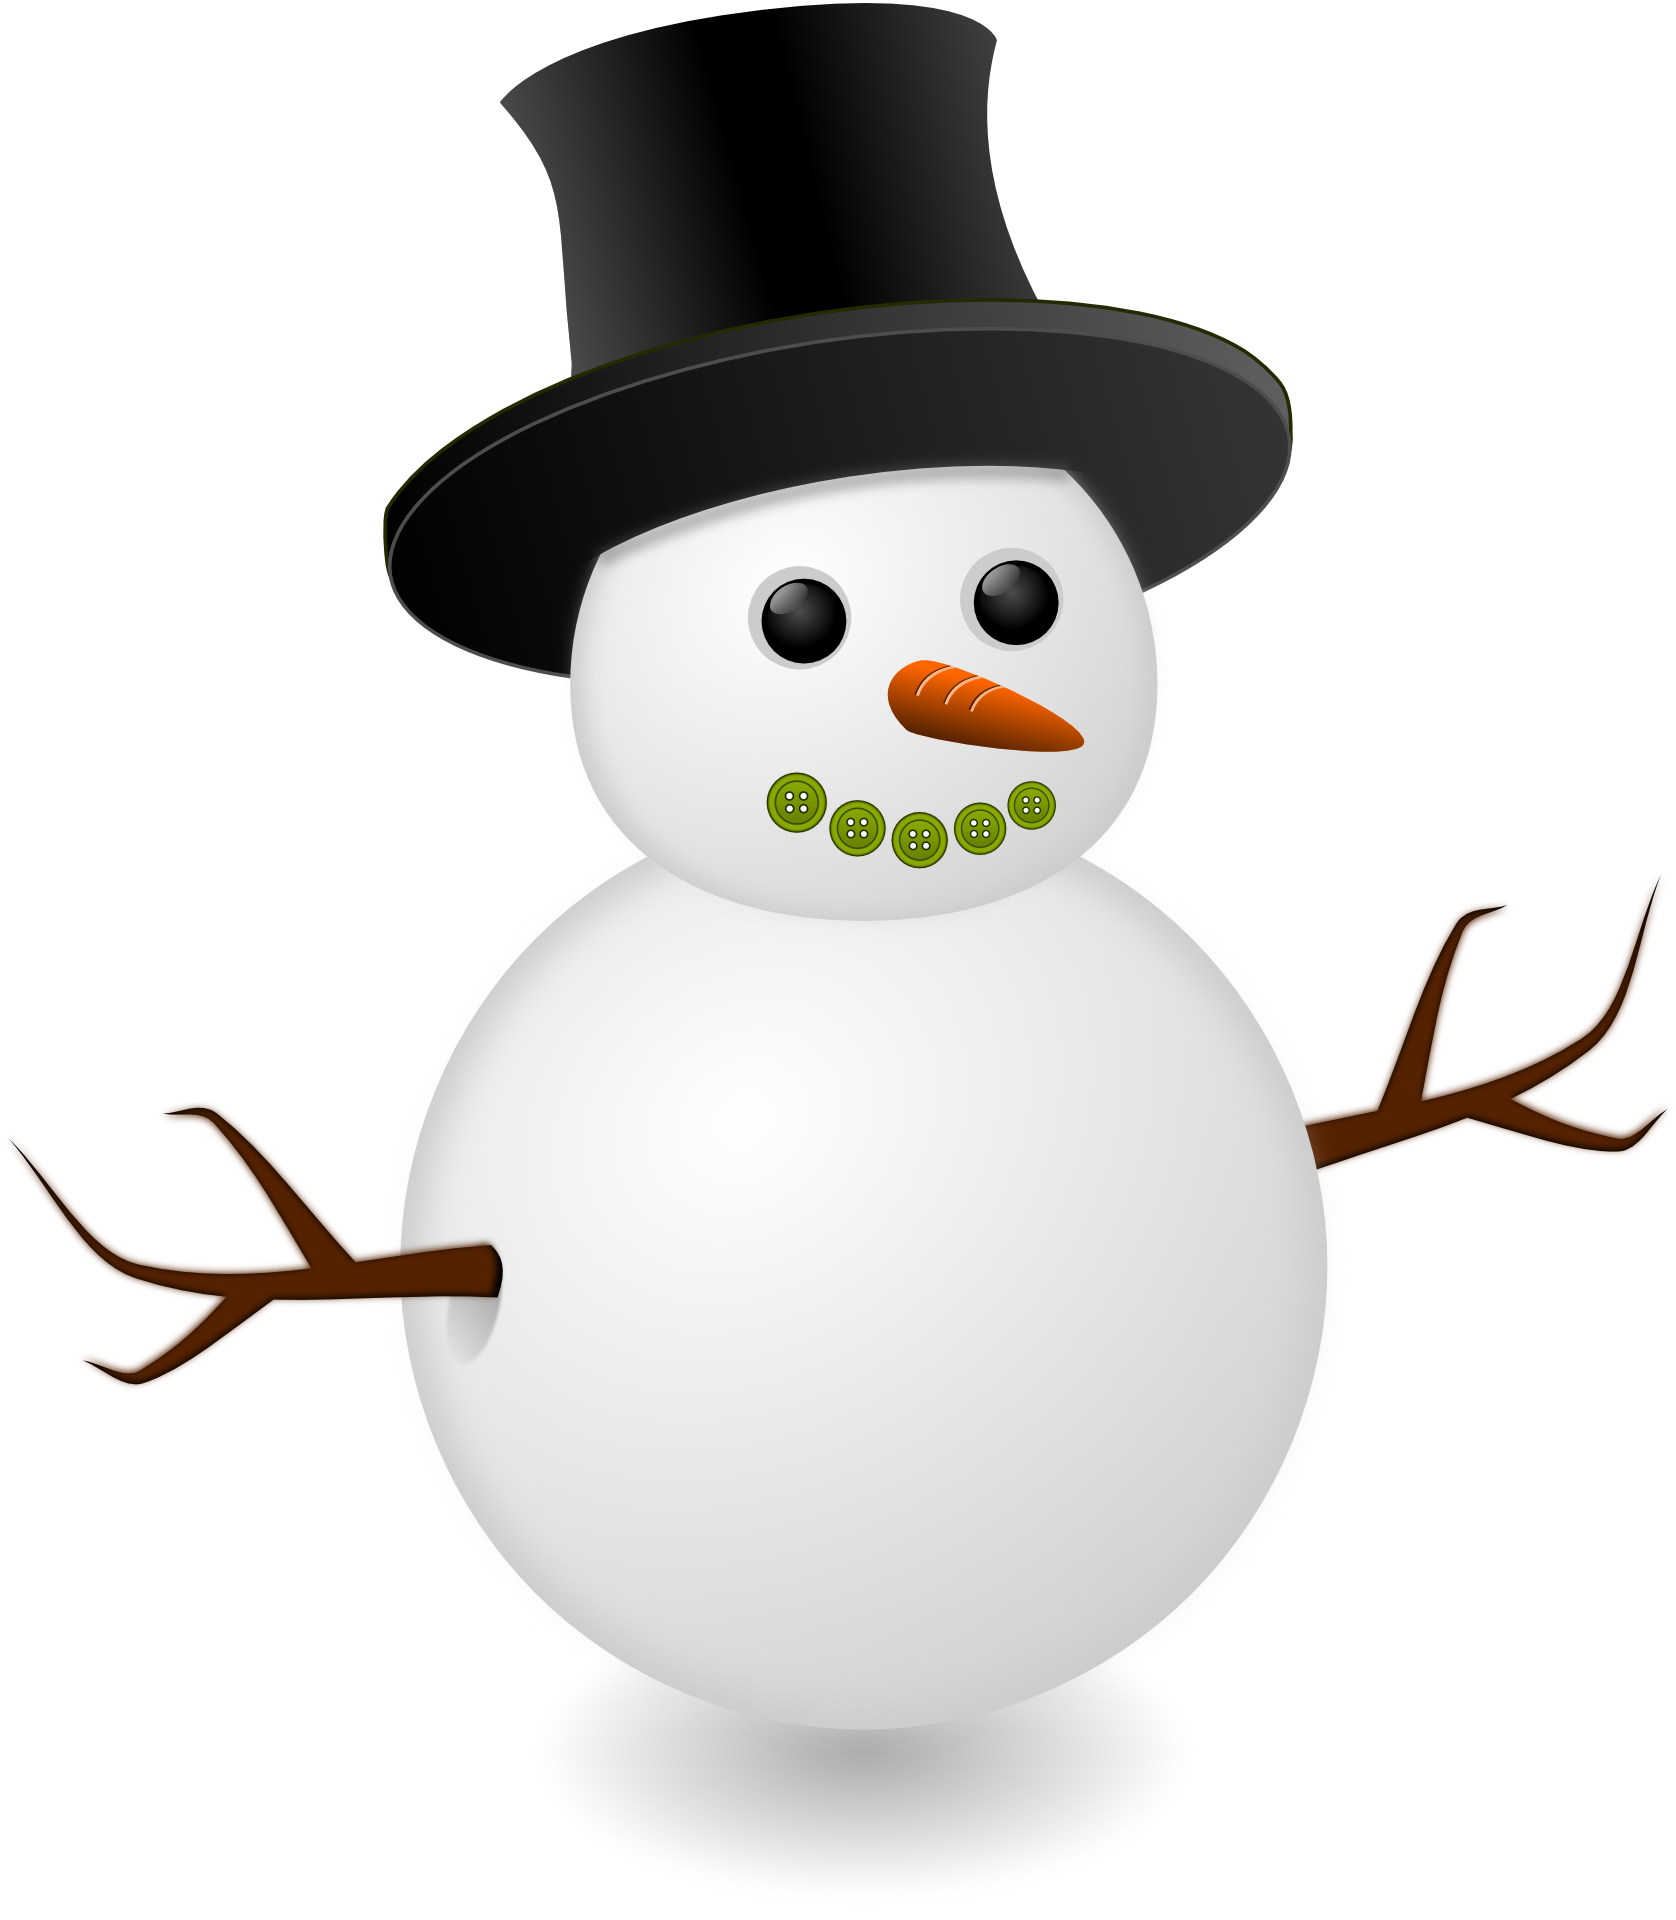 Snowman clipart with crown graphic library library Free snowman clipart images | ClipartMonk - Free Clip Art Images graphic library library